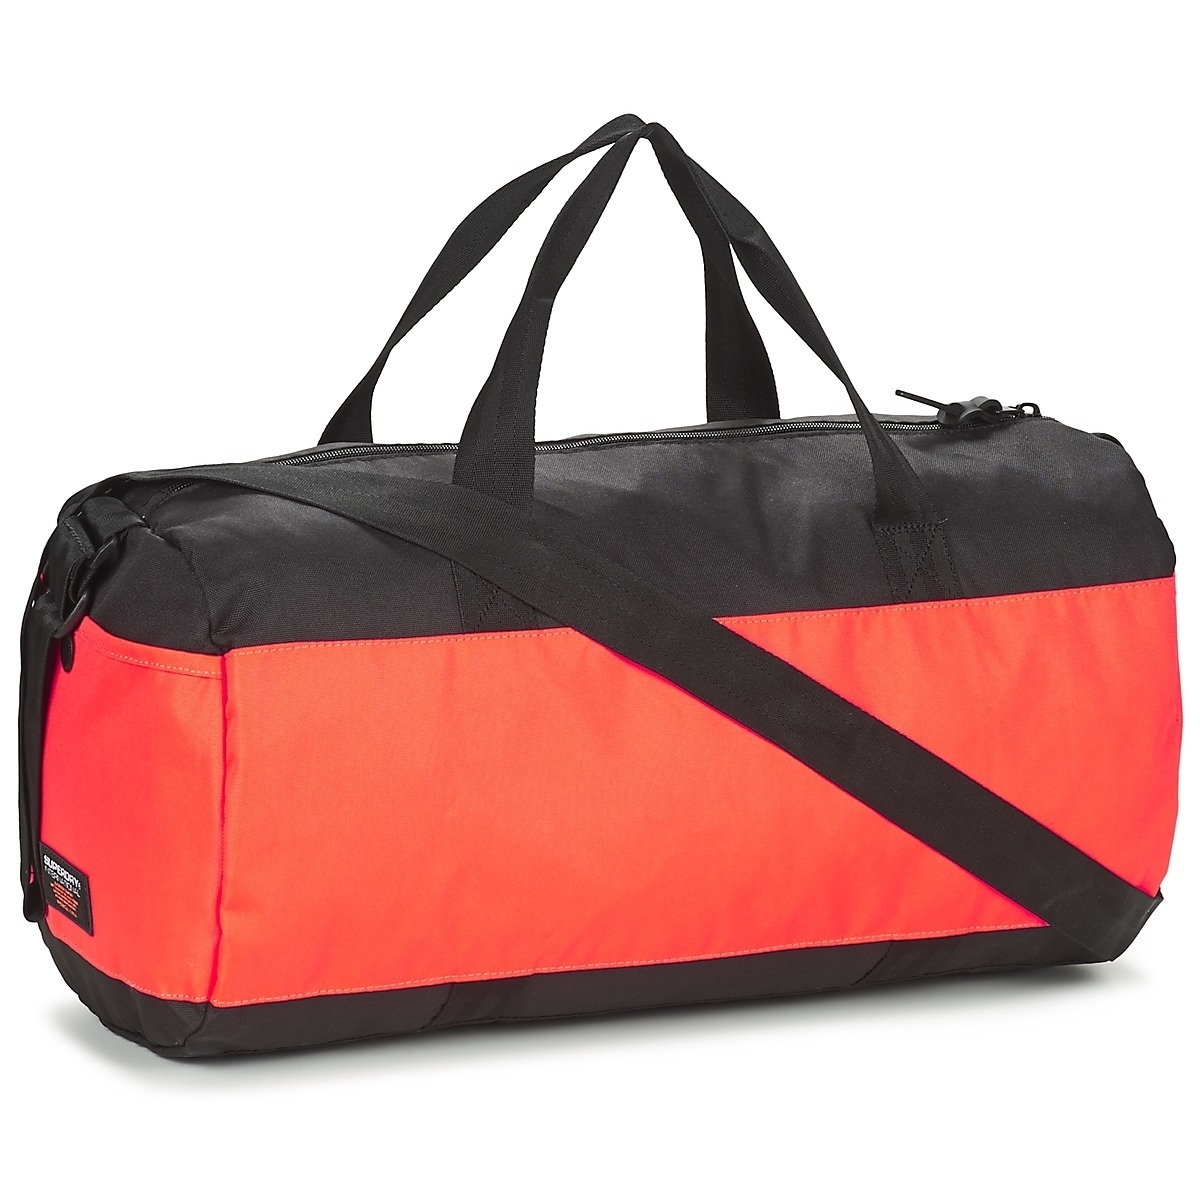 d082d207ae Sac De Sport Superdry Montana Barrel Black /orange | Alltricks.com